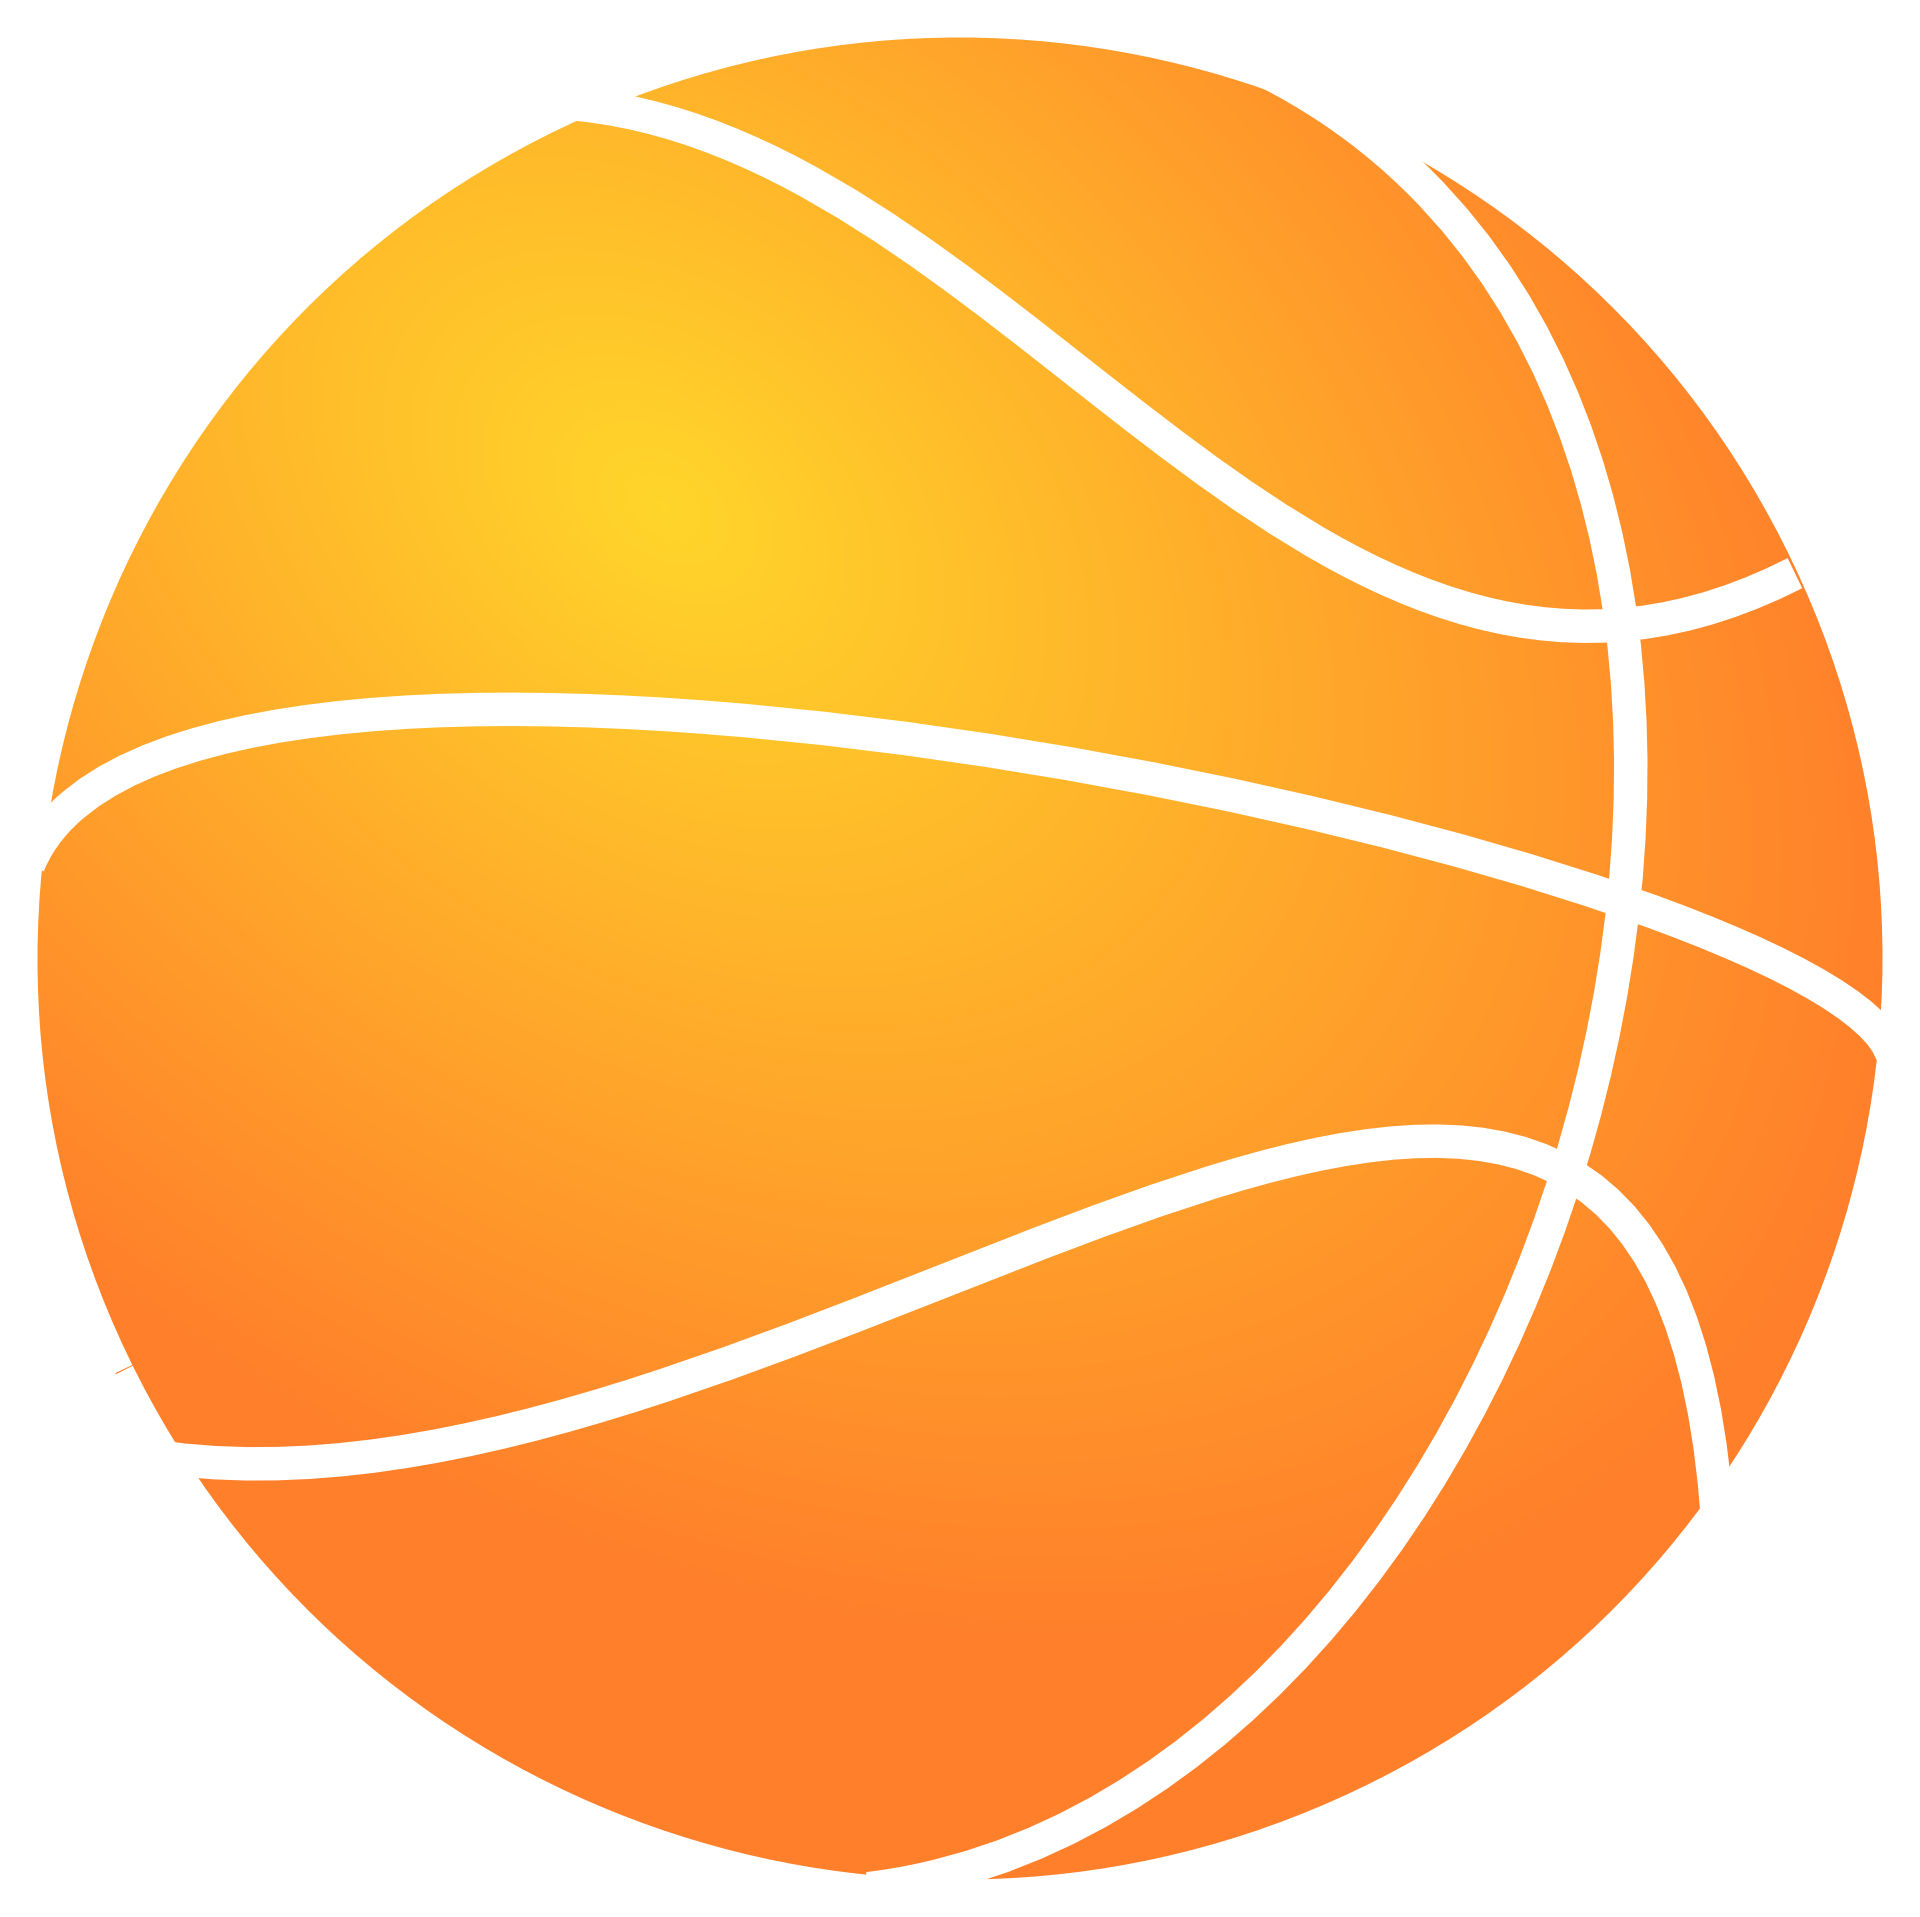 clipart free download Basketball clip. Outline of art orange